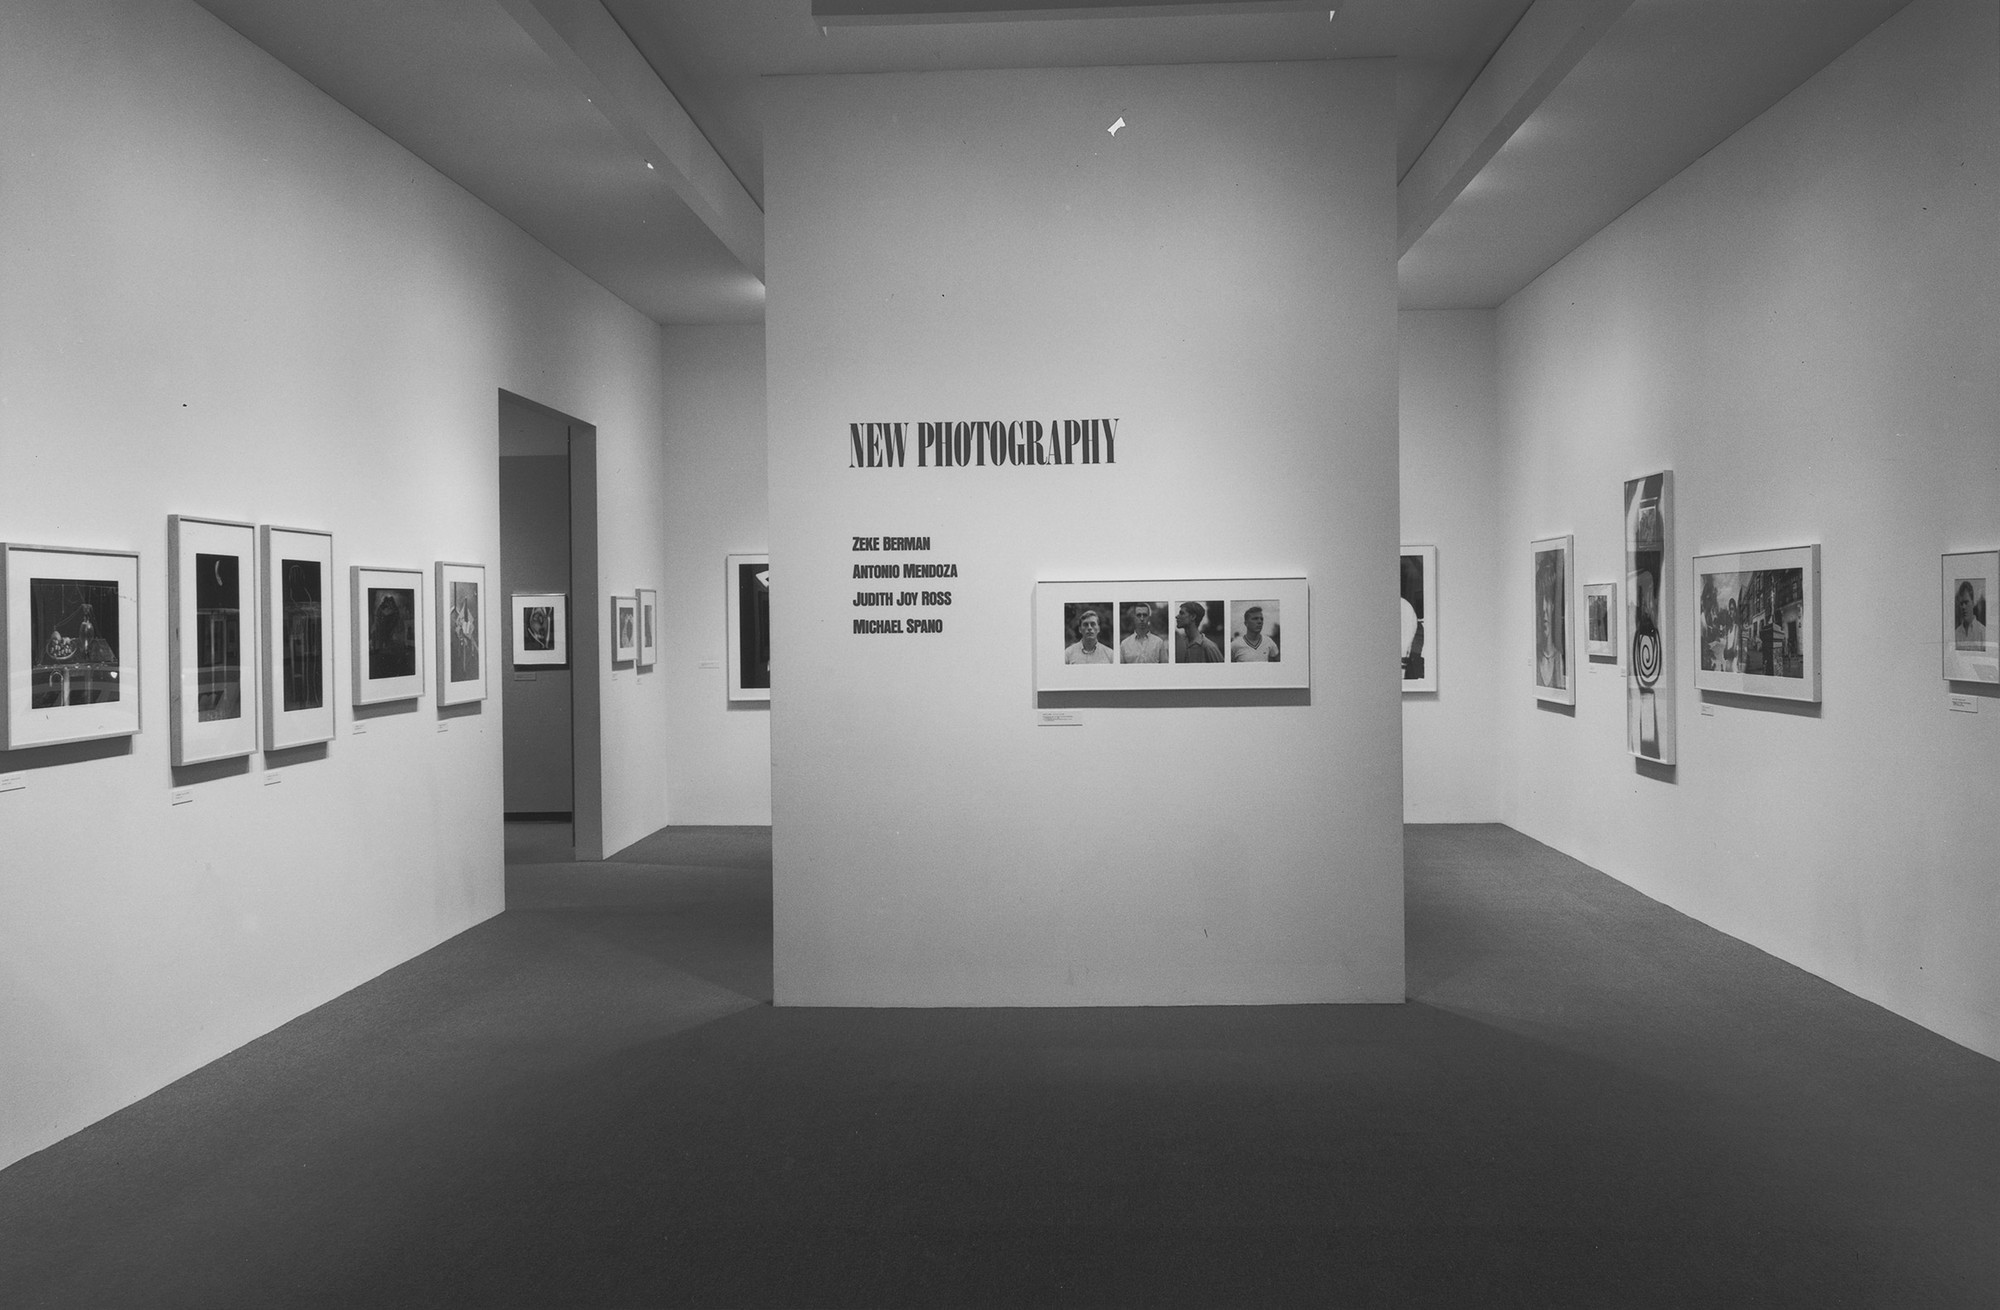 Installation view of new photography zeke berman antonio mendoza judith joy ross